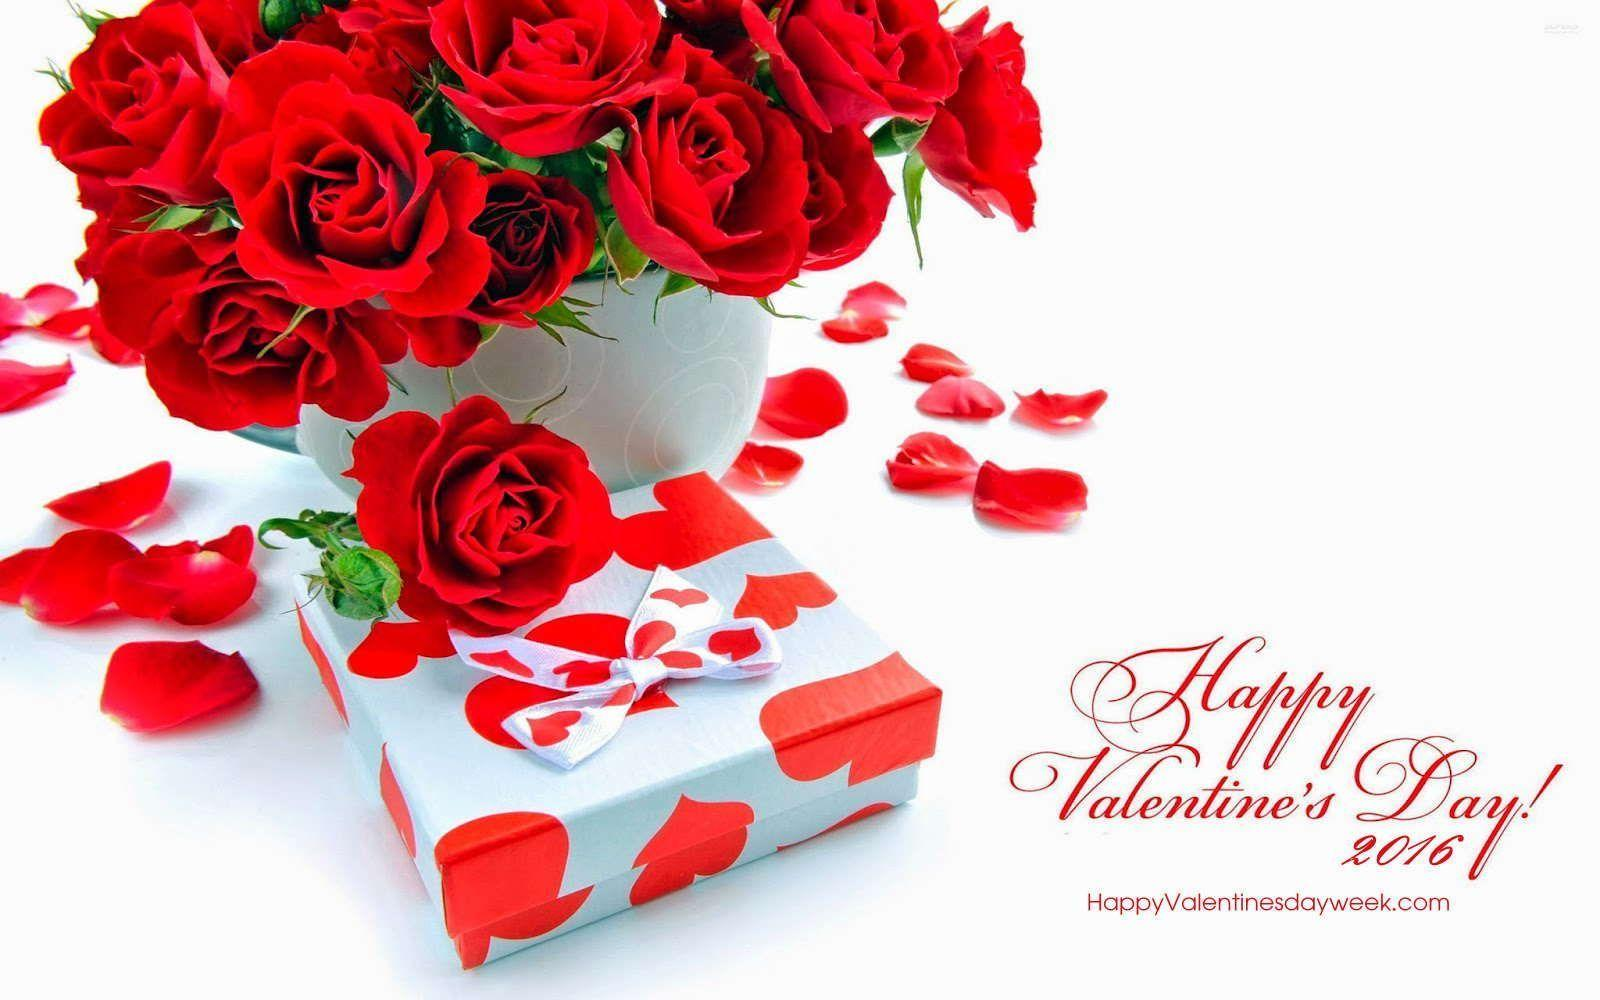 Happy Valentines Day 2017 Image Pictures Quotes Messages HD